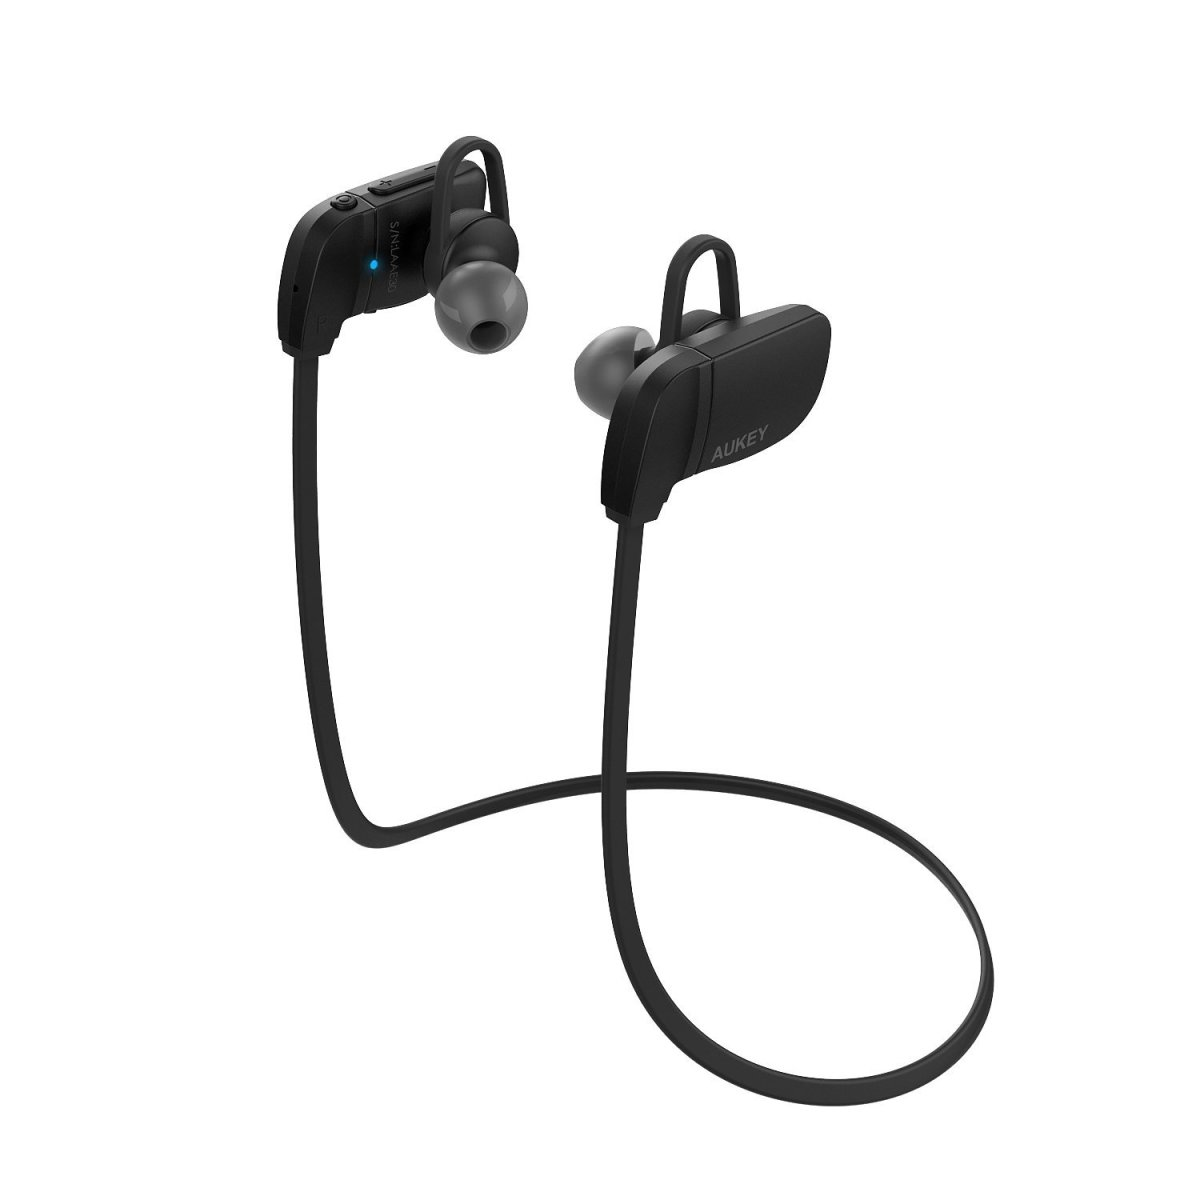 A Regular Guy's Review: AUKEY Bluetooth Wireless Earbuds